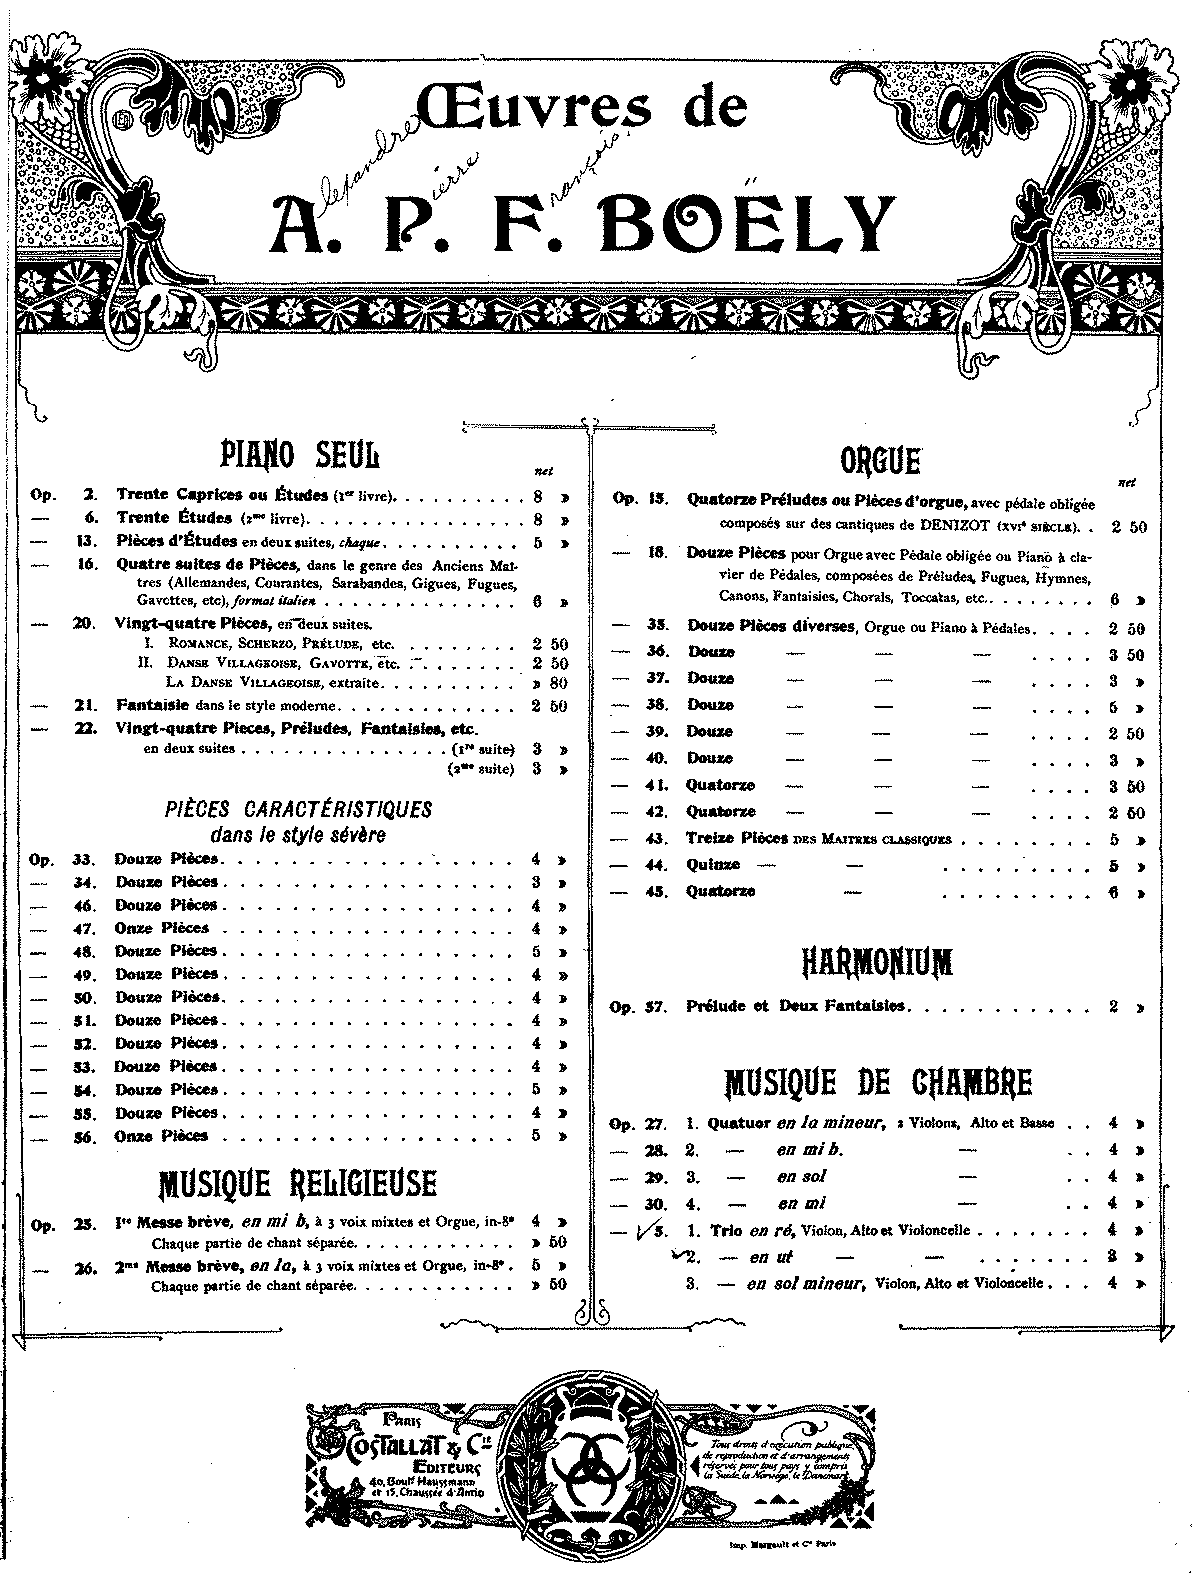 SIBLEY1802.11386.25be-39087009064975.violin.pdf